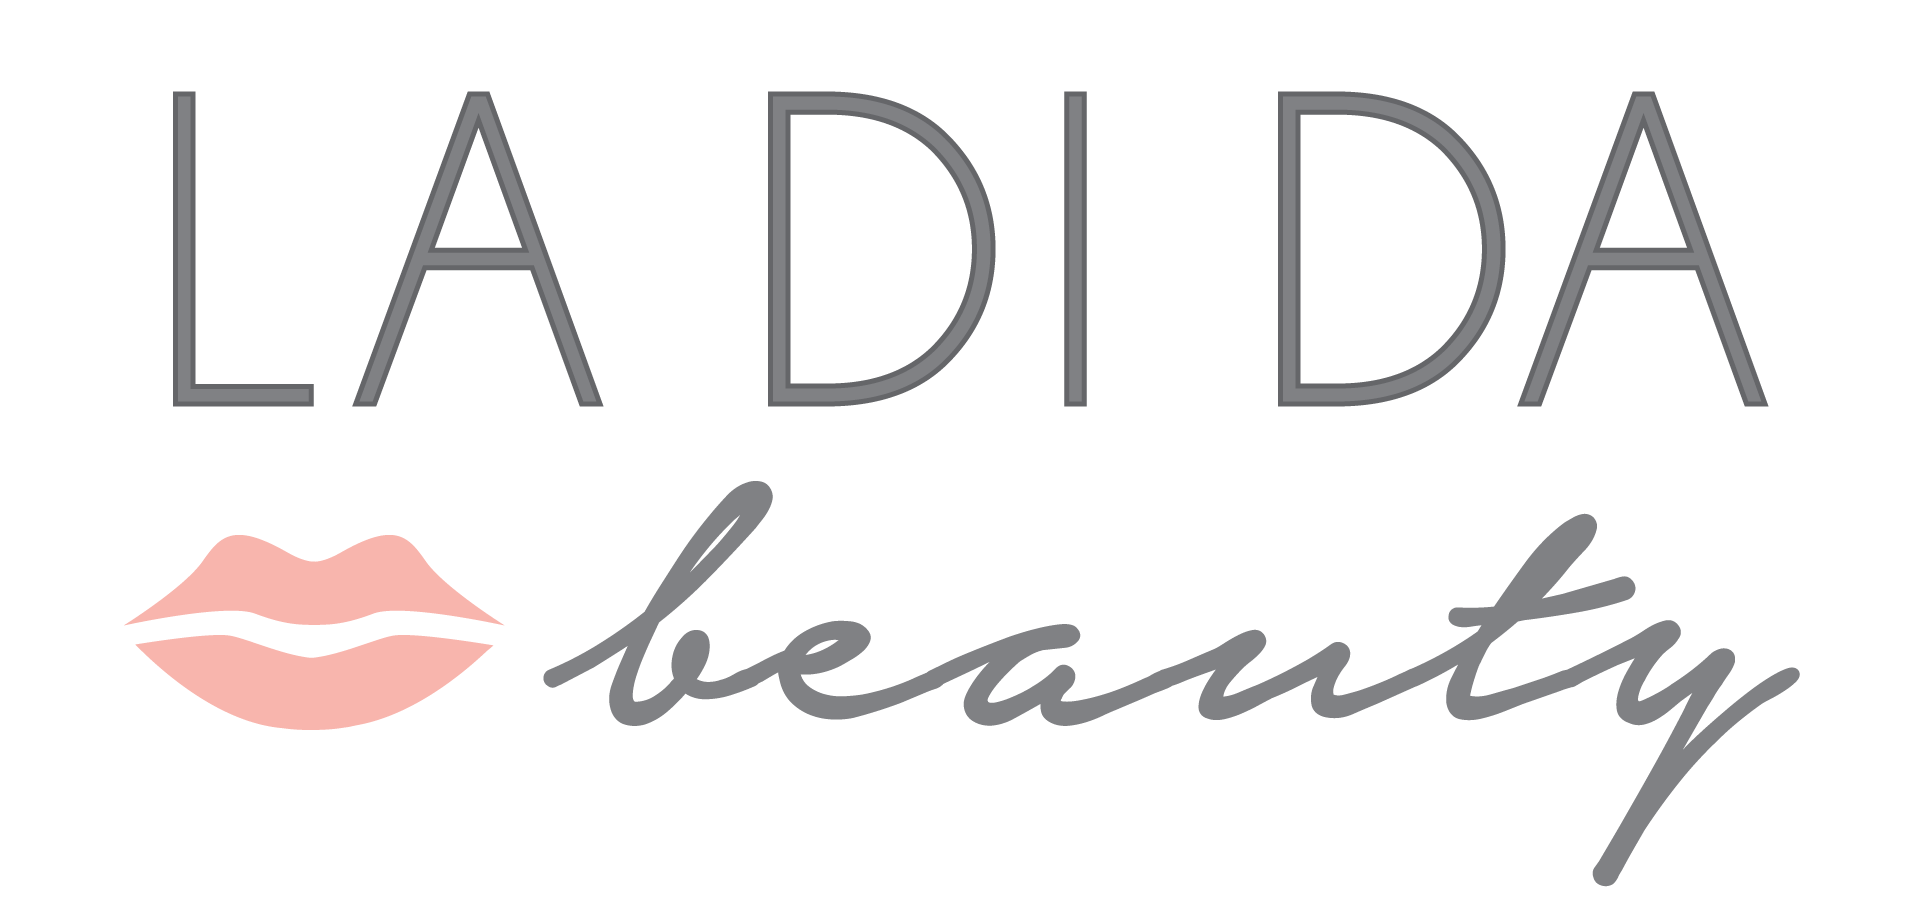 la-di-da-beauty-logo-gray-text-white-background